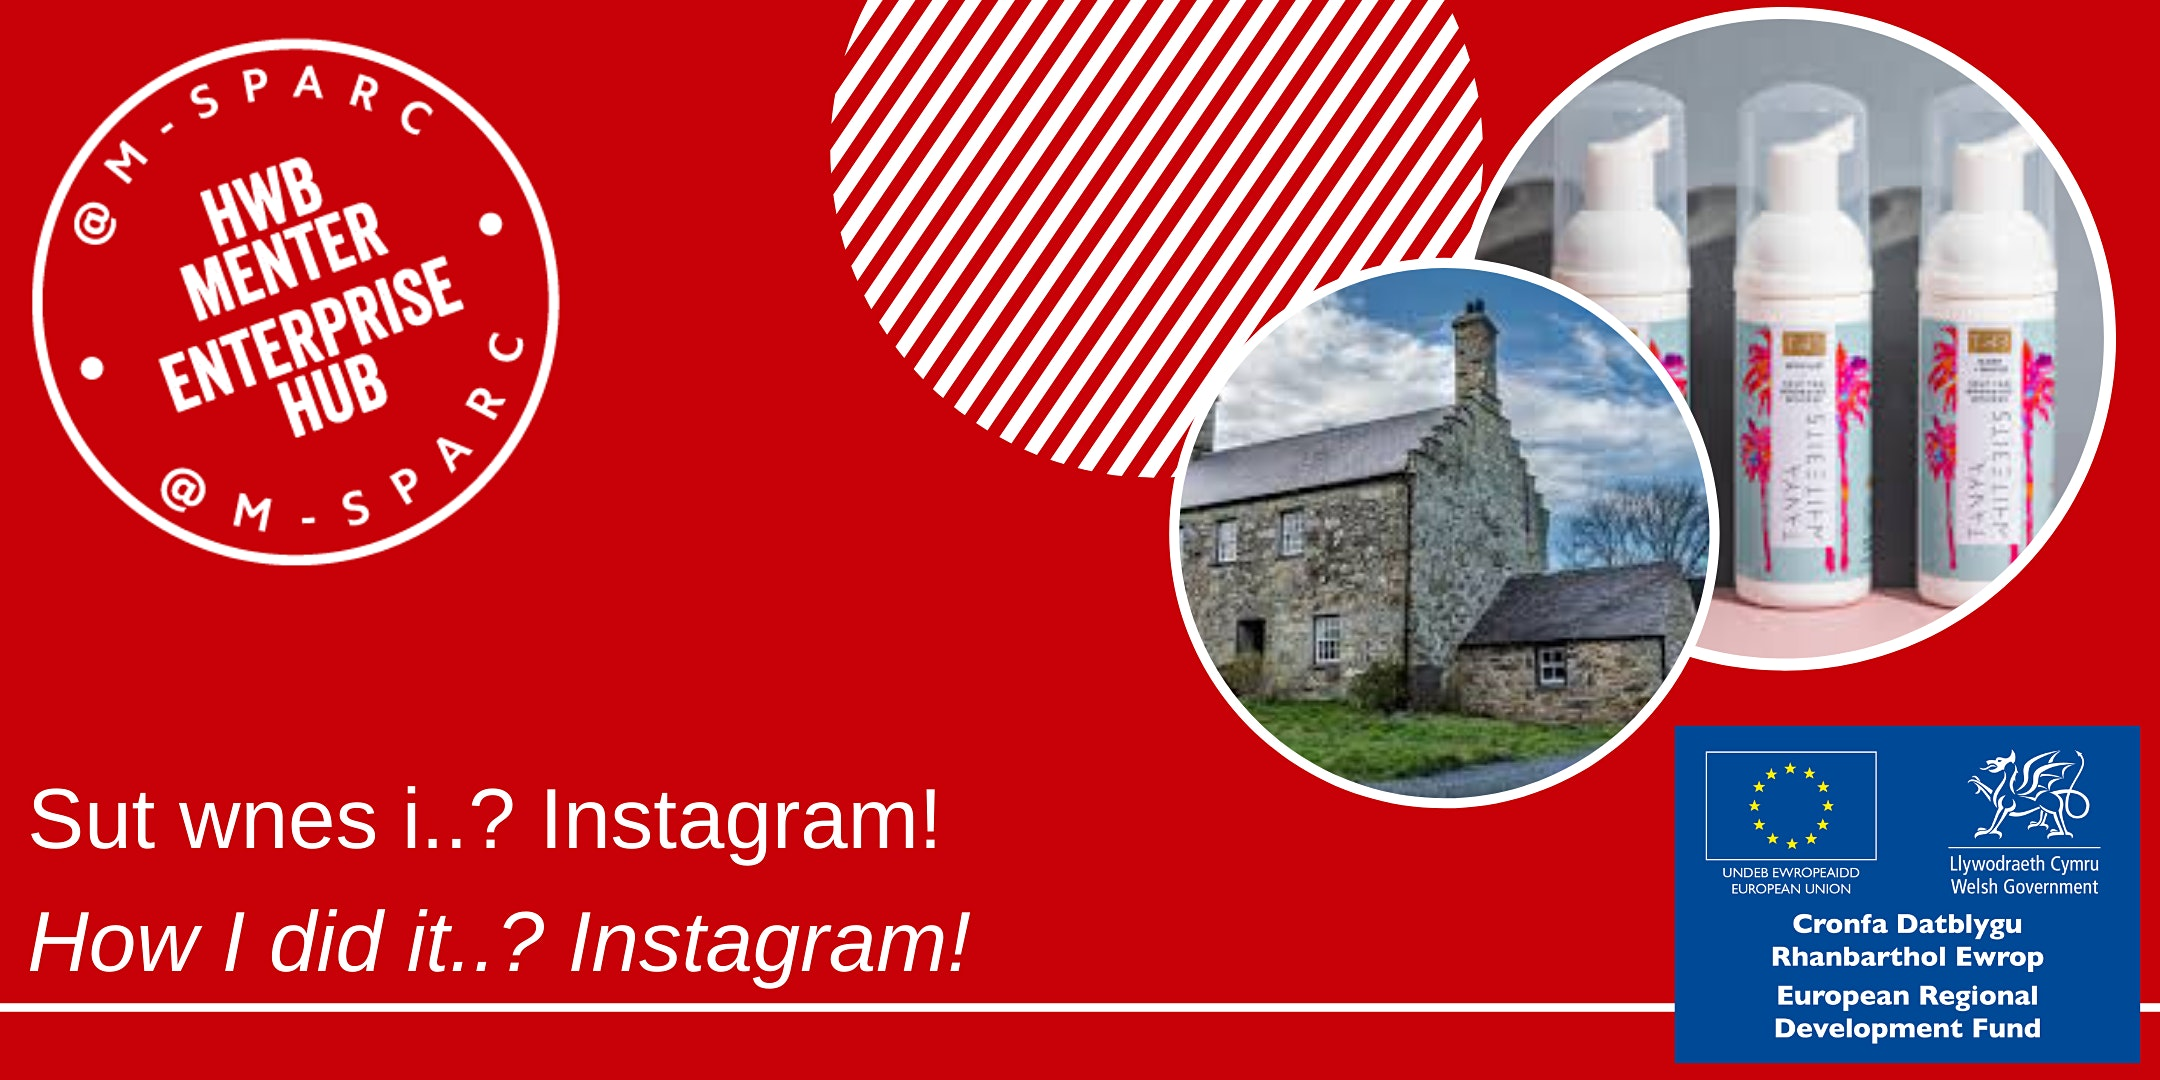 Covid-19: Sut wnes i...Instagram!  / How I did it...Instagram!